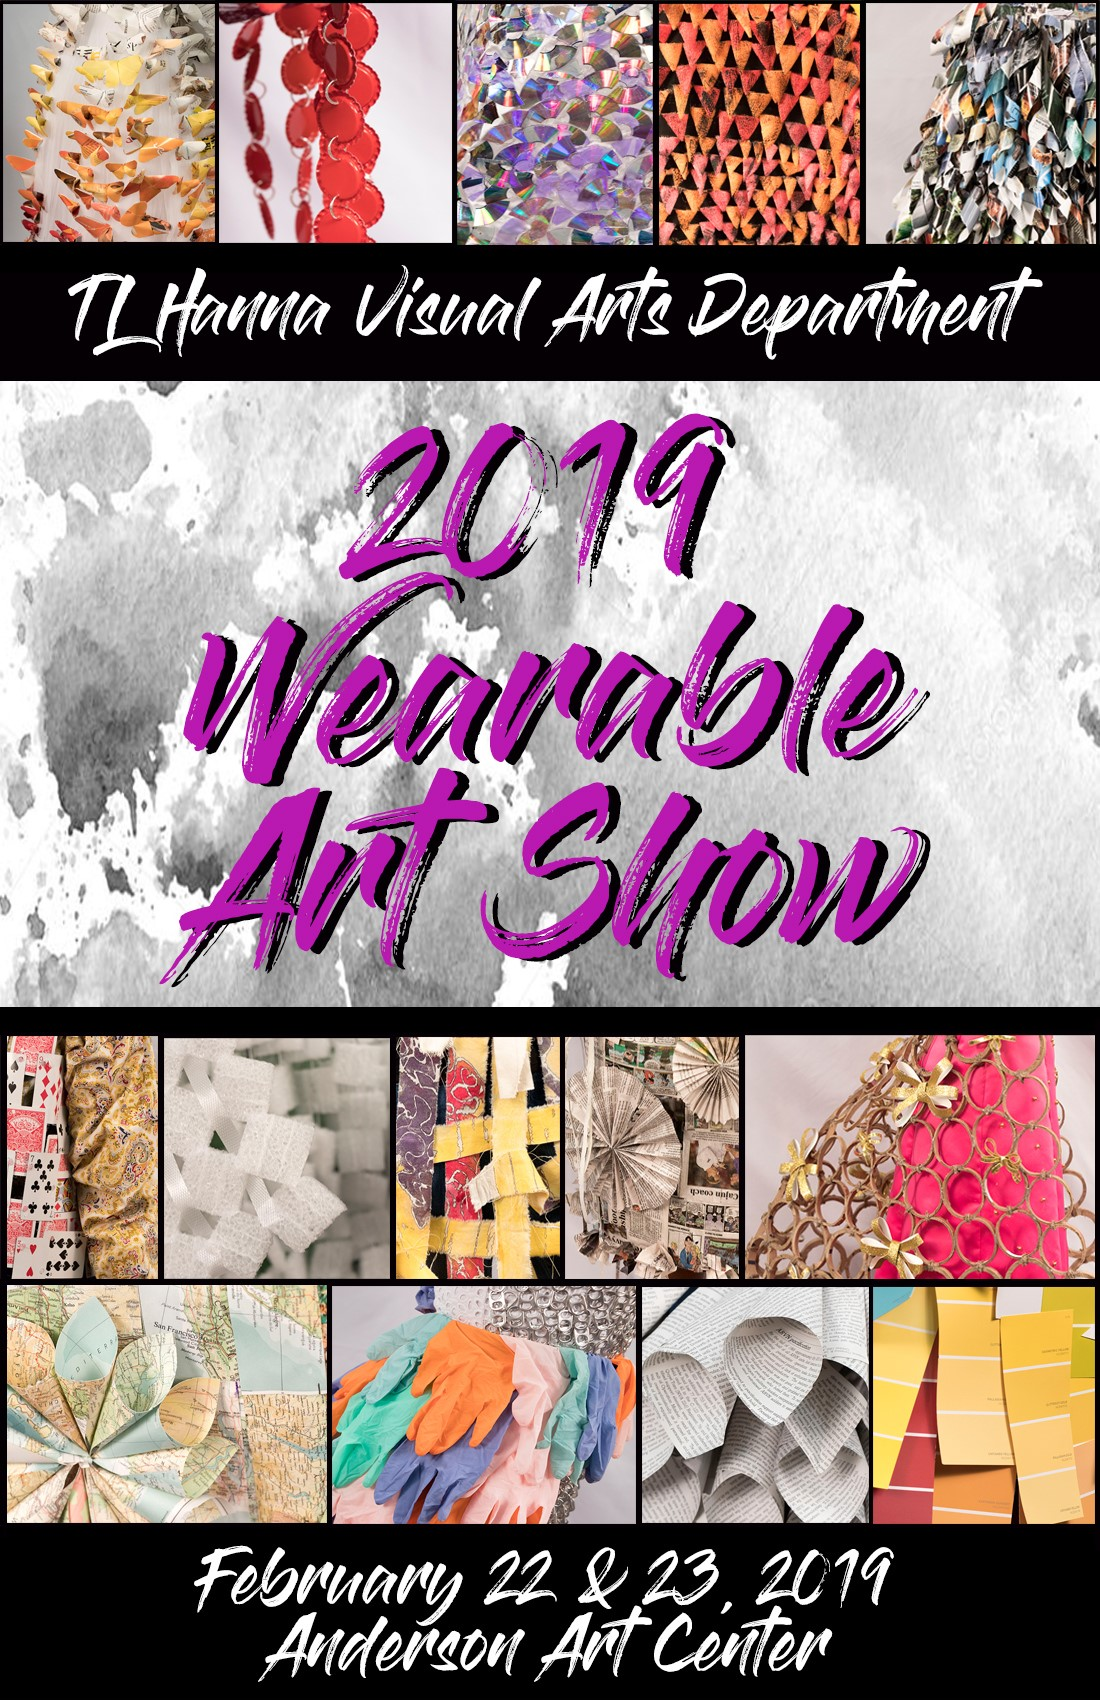 TL Hanna Wearable Art Show | Anderson Arts Center